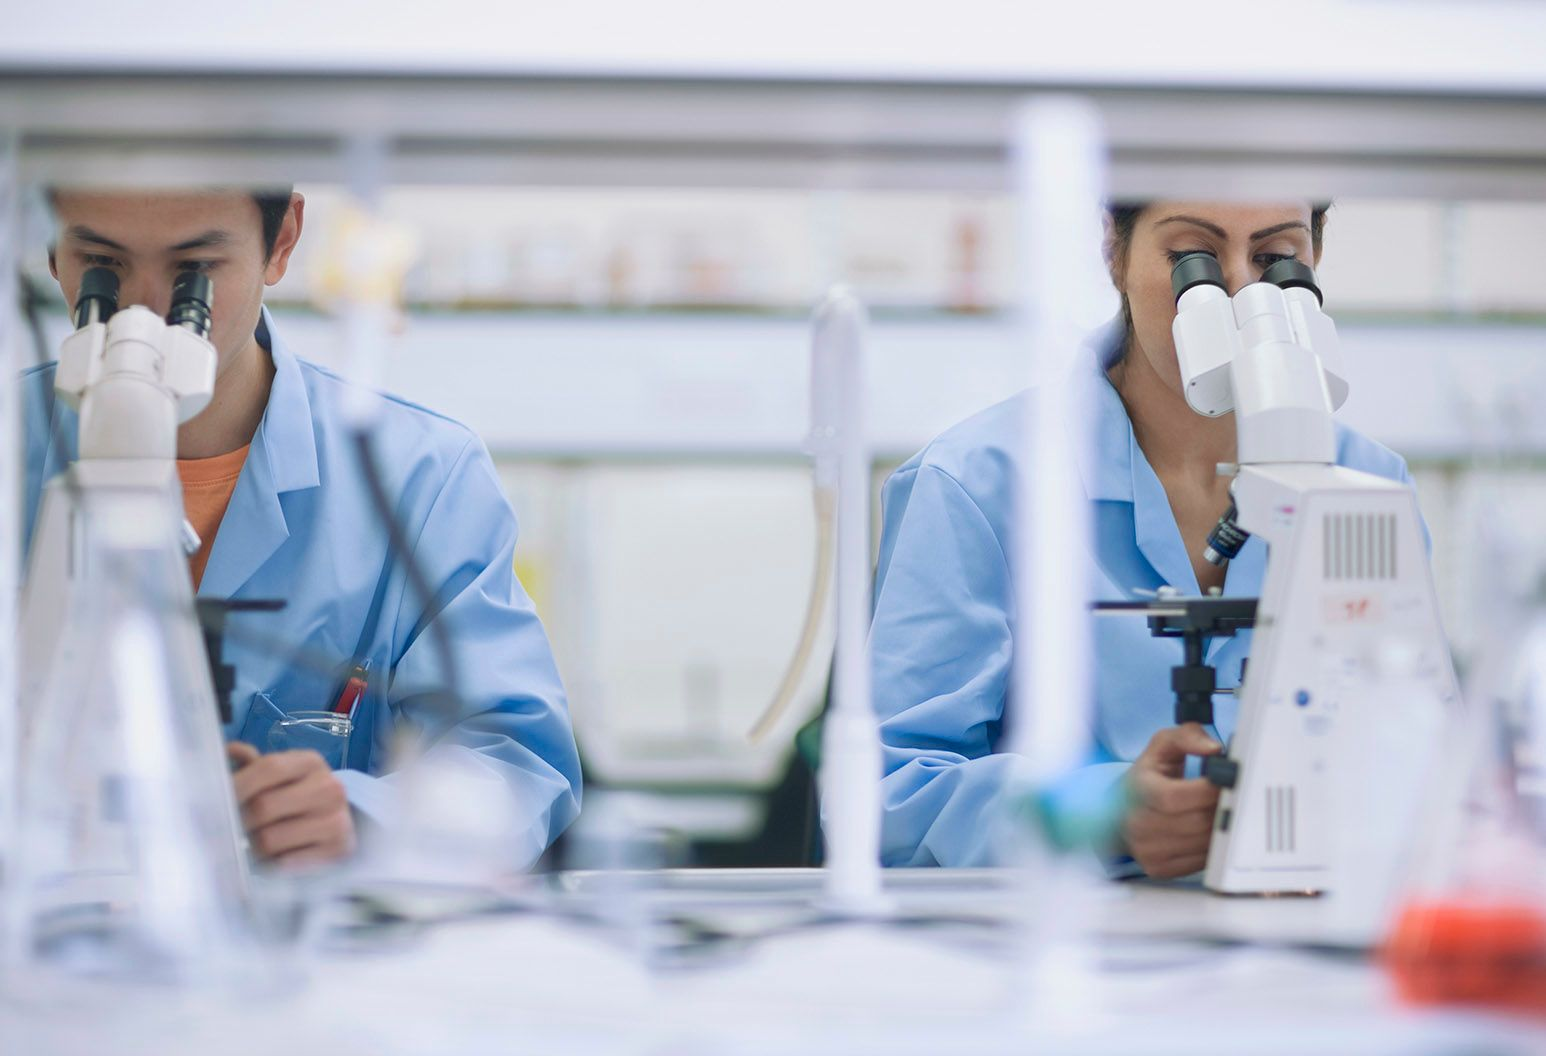 Two researchers wearing blue coats sit side by side and look into microscopes.